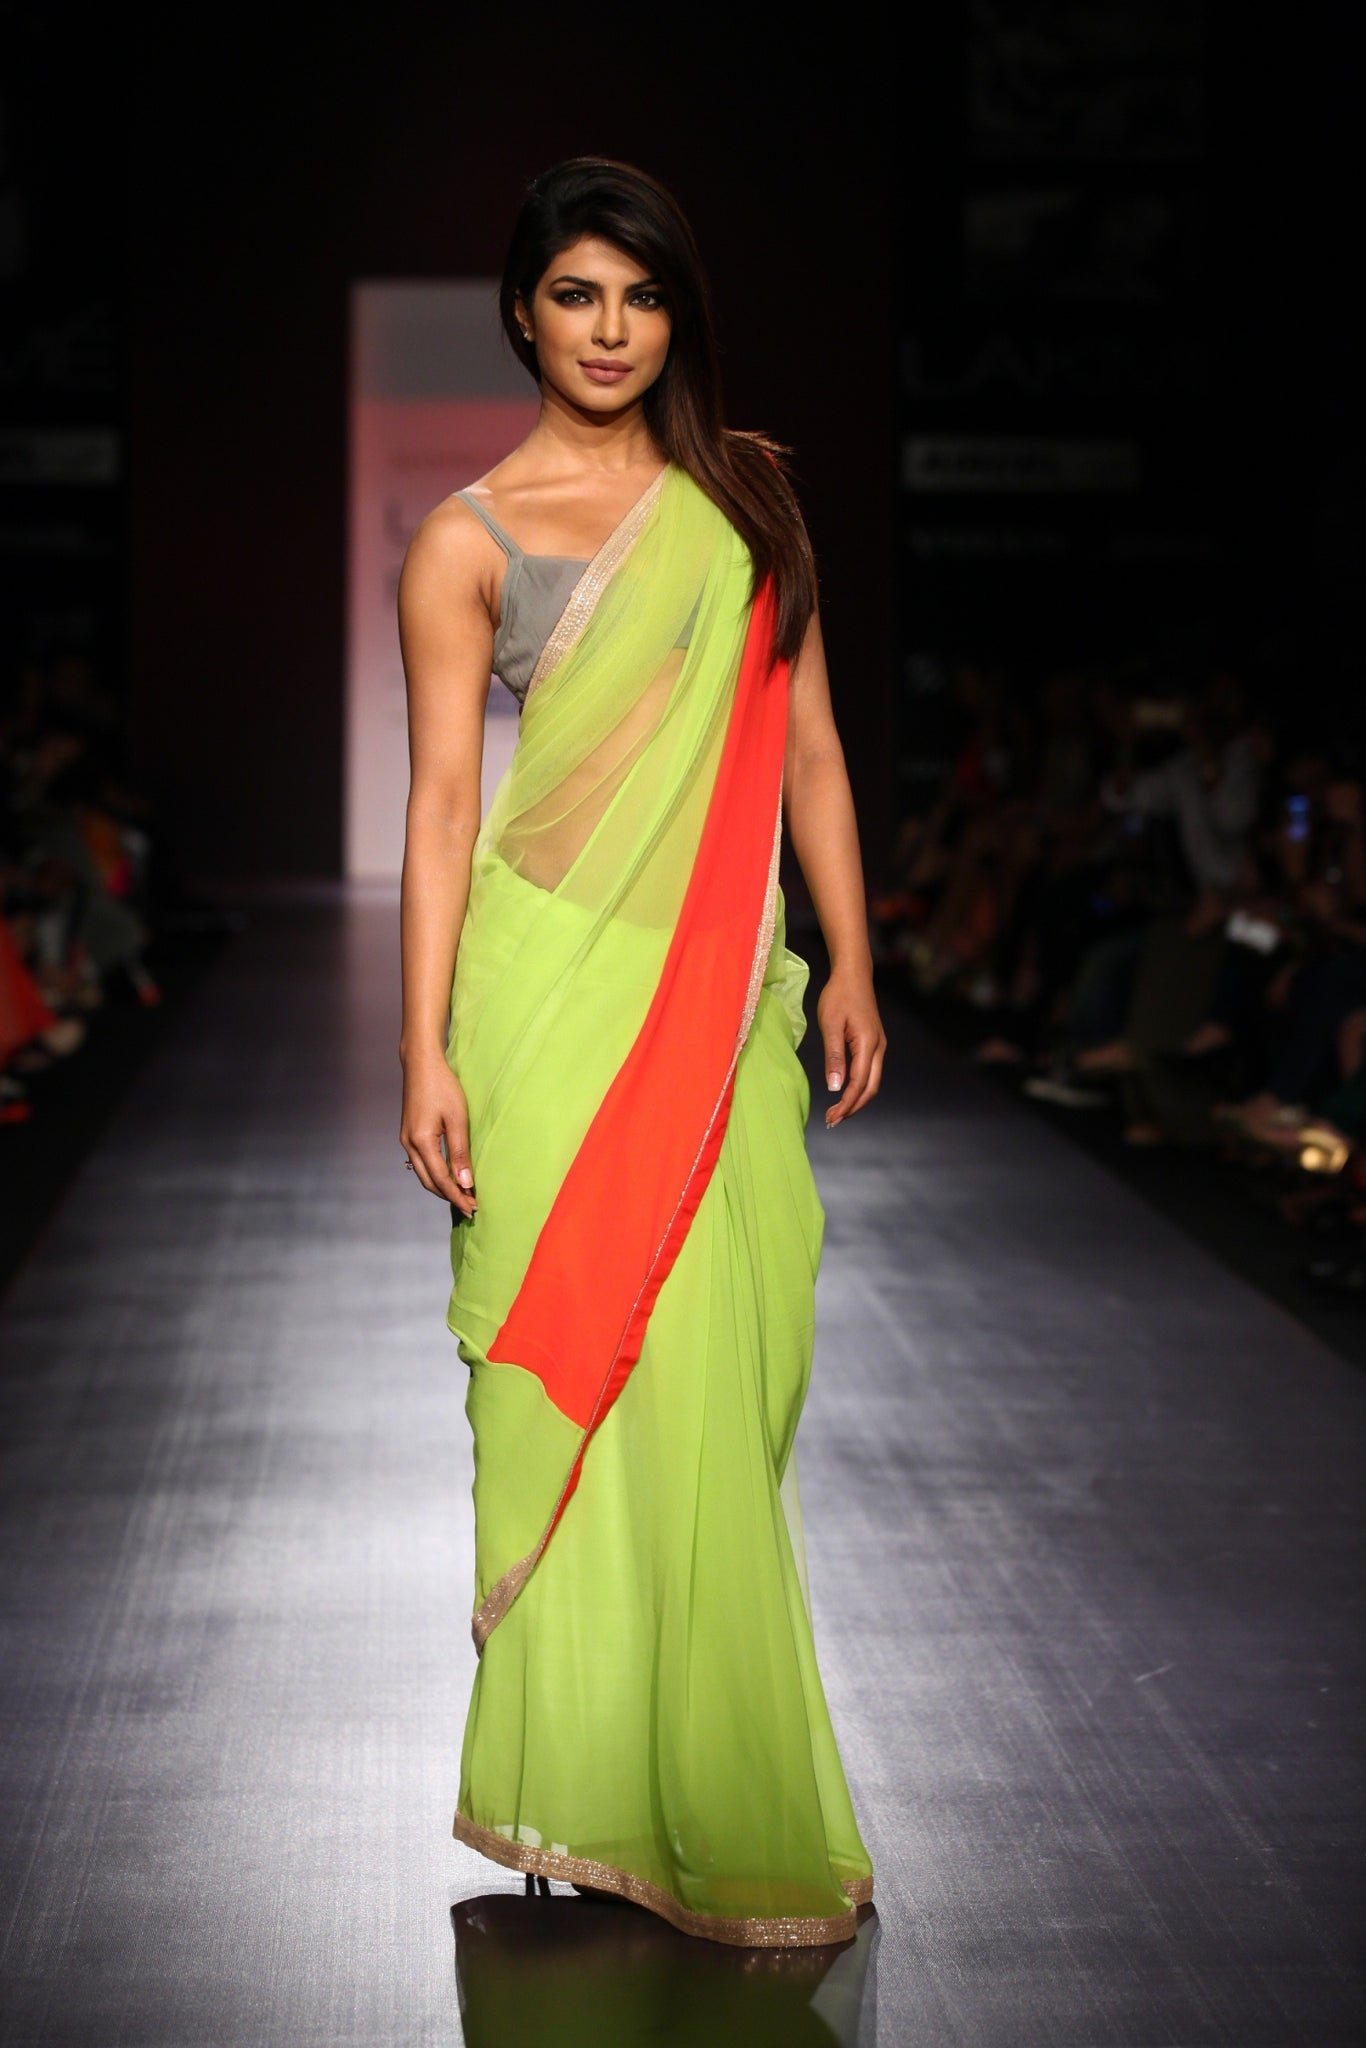 priyanka-chopra-in-dostana-in-saree